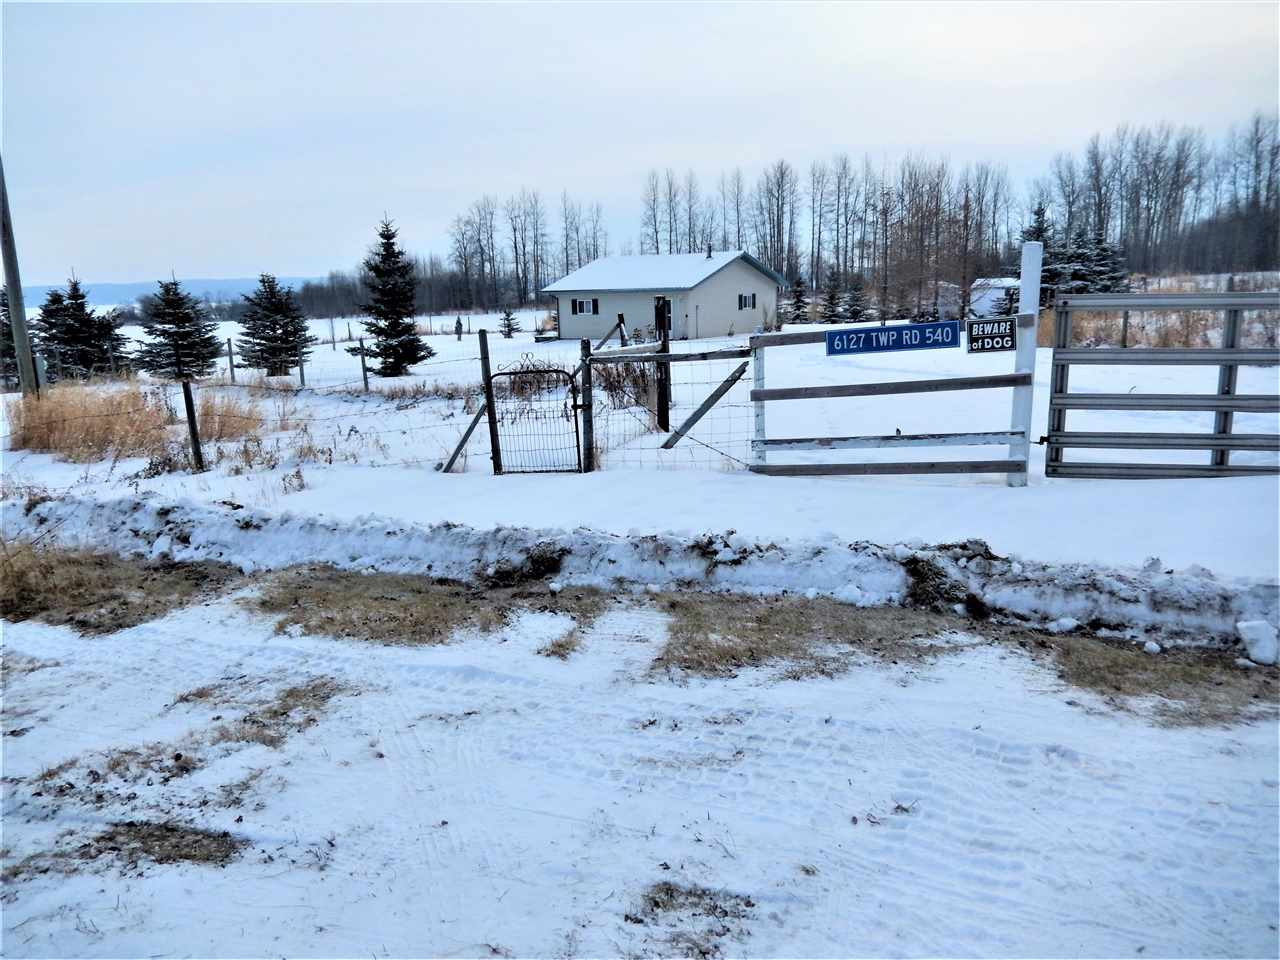 This 23.5 ACRE parcel has a 2006 BUNGALOW with CATHEDRAL CEILINGS, OPEN CONCEPT, WOOD STOVE, PATIO DOORS, DECK, 1 BEDR & a BATHR (which still needs plumbing etc) & SHED (8x10) The home was built on a CONCRETE SLAB, but has no plumbing yet and the gas line is at the property line. The ELECTRICAL is complete. There are 3-220 amp breakers.  There is an OUTHOUSE with a 750 GAL. HOLDING TANK and there is an outlet to allow connection to the house as well. The LAND is mostly open & the Seller has it HAYED every year. The perimeter is FENCED & GATED and the immediate yard is FENCED & GATED.  The property sits at the end of a DEAD END road and has a neighbor on one side.  One side of the property borders HWY 633 & is only minutes to LAKE ISLE. What a great place to GETAWAY to or create a YEAR ROUND HOME & raise ANIMALS.  Only 2 km of gravel to the property & its 14 km to Darwell & 15 min to Seba Beach.